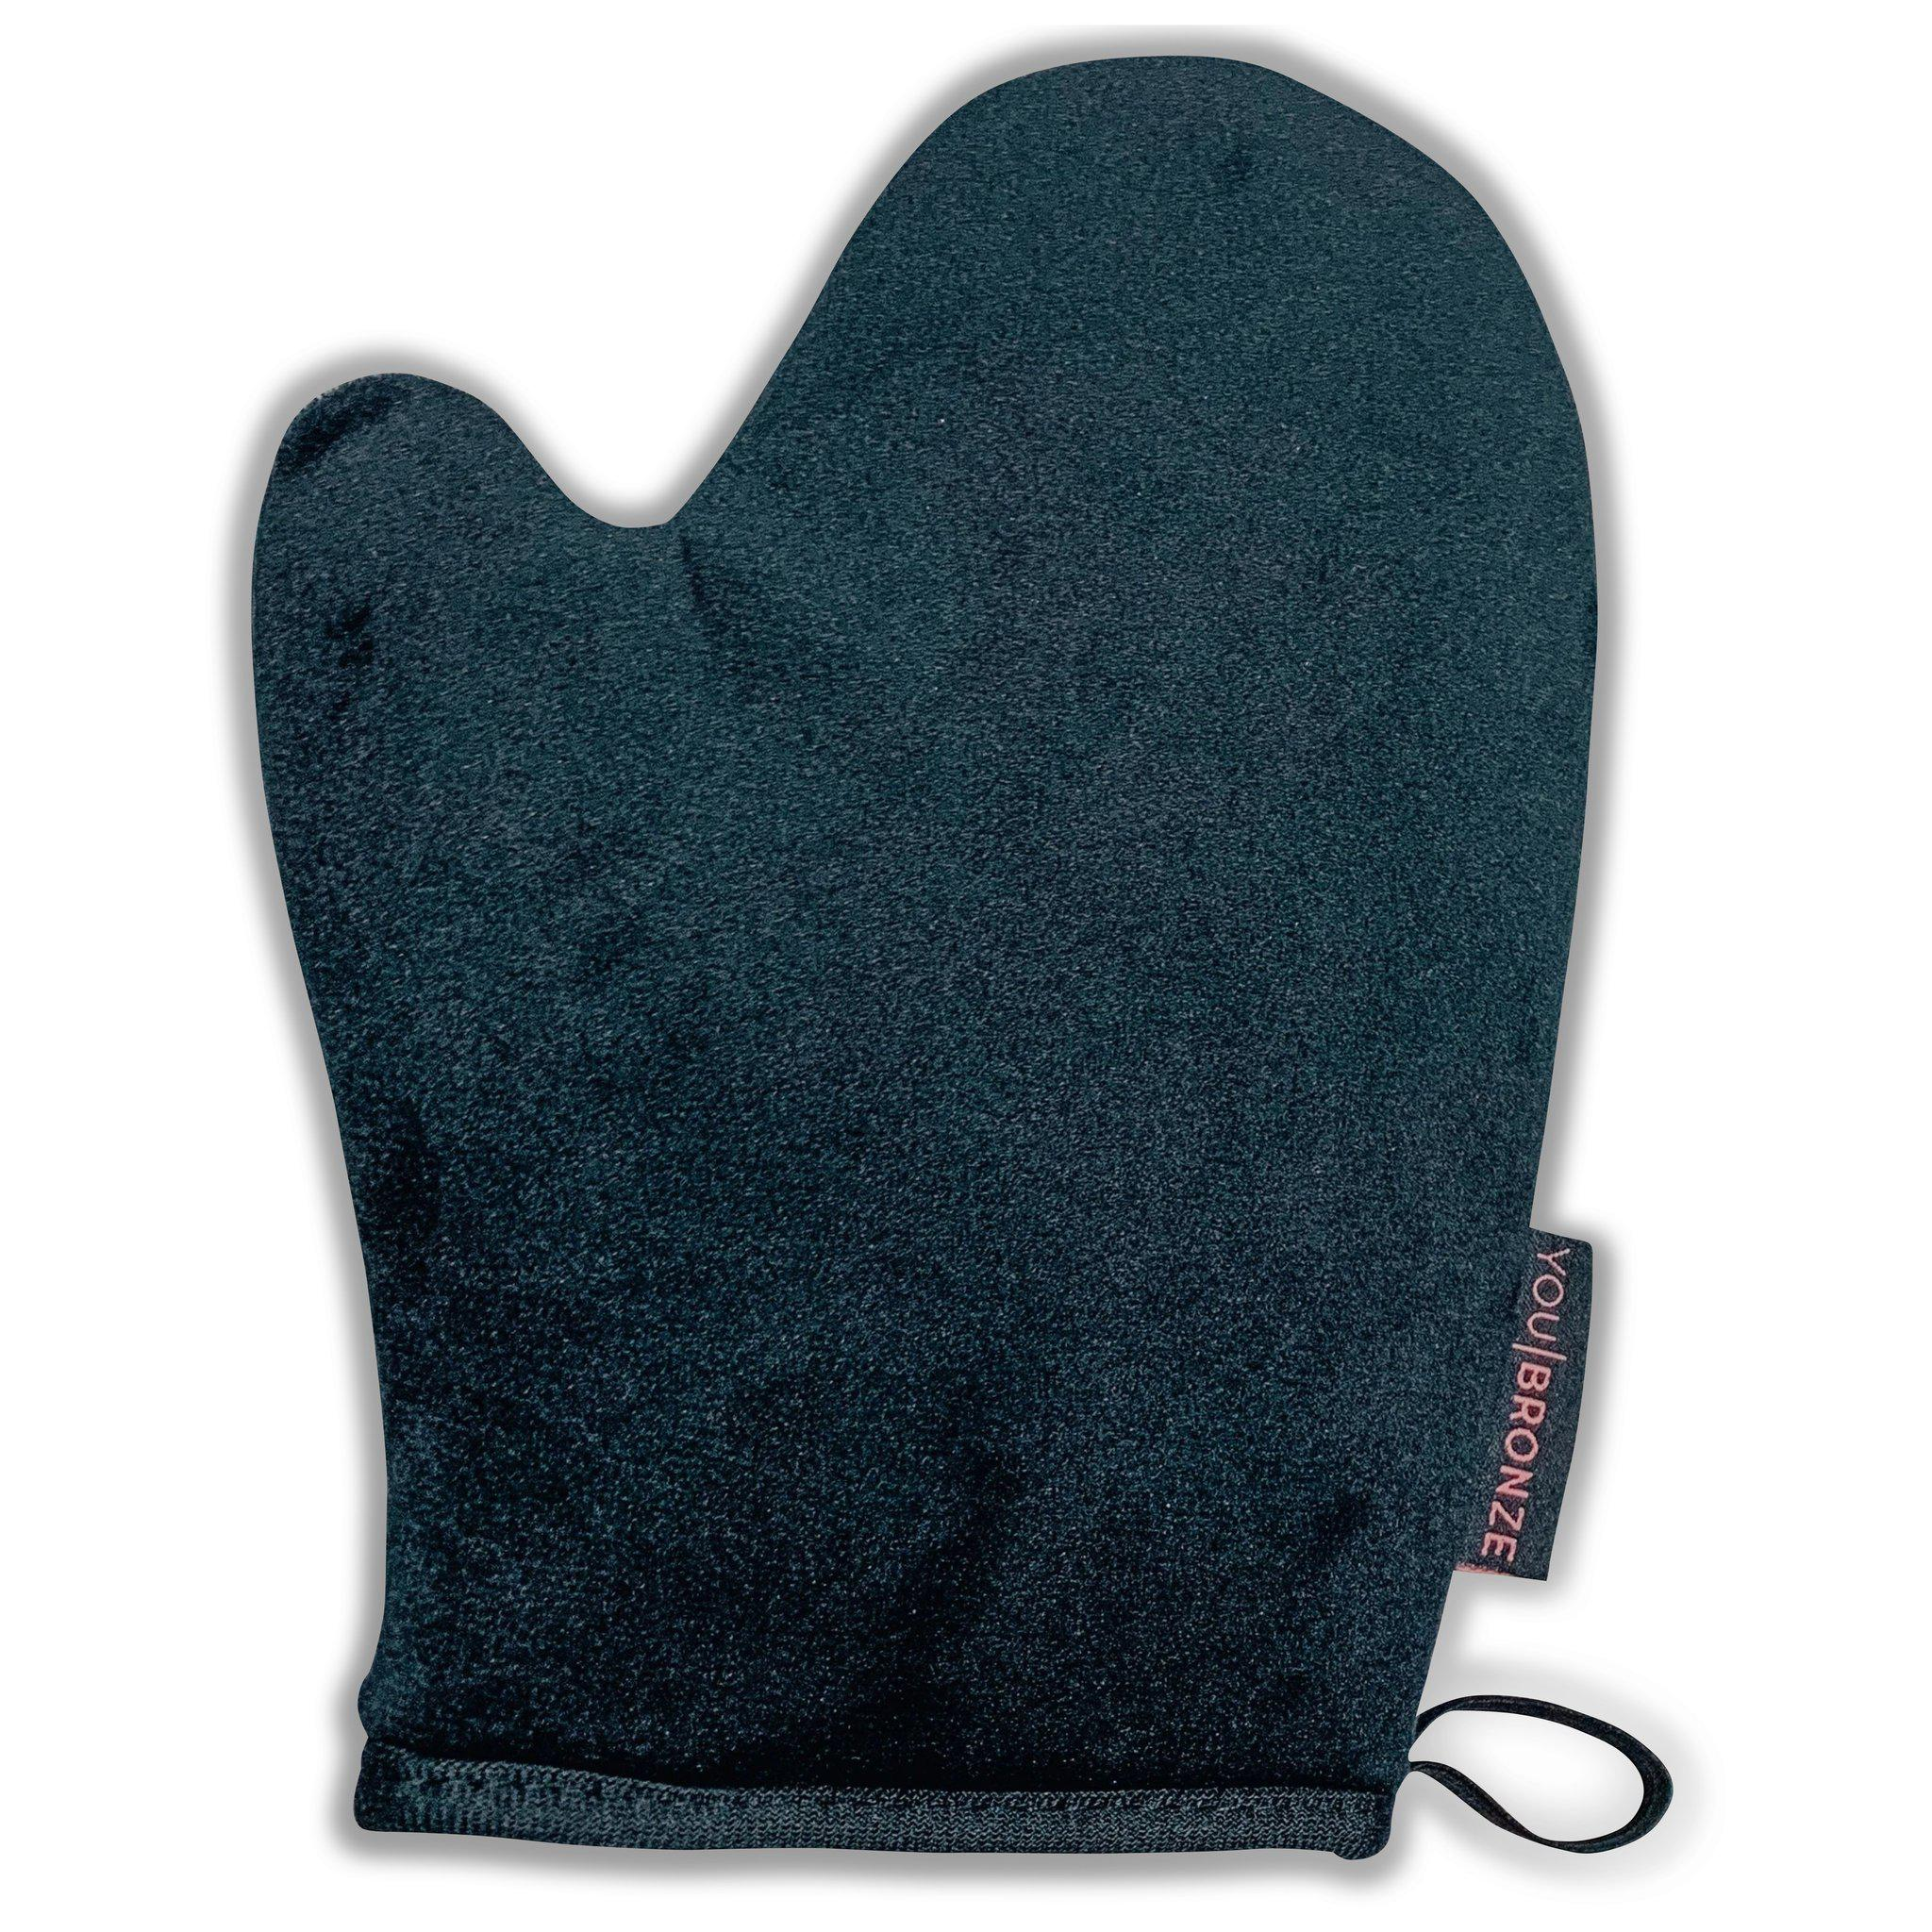 You Bronze Self Tanning Applicator Mitt